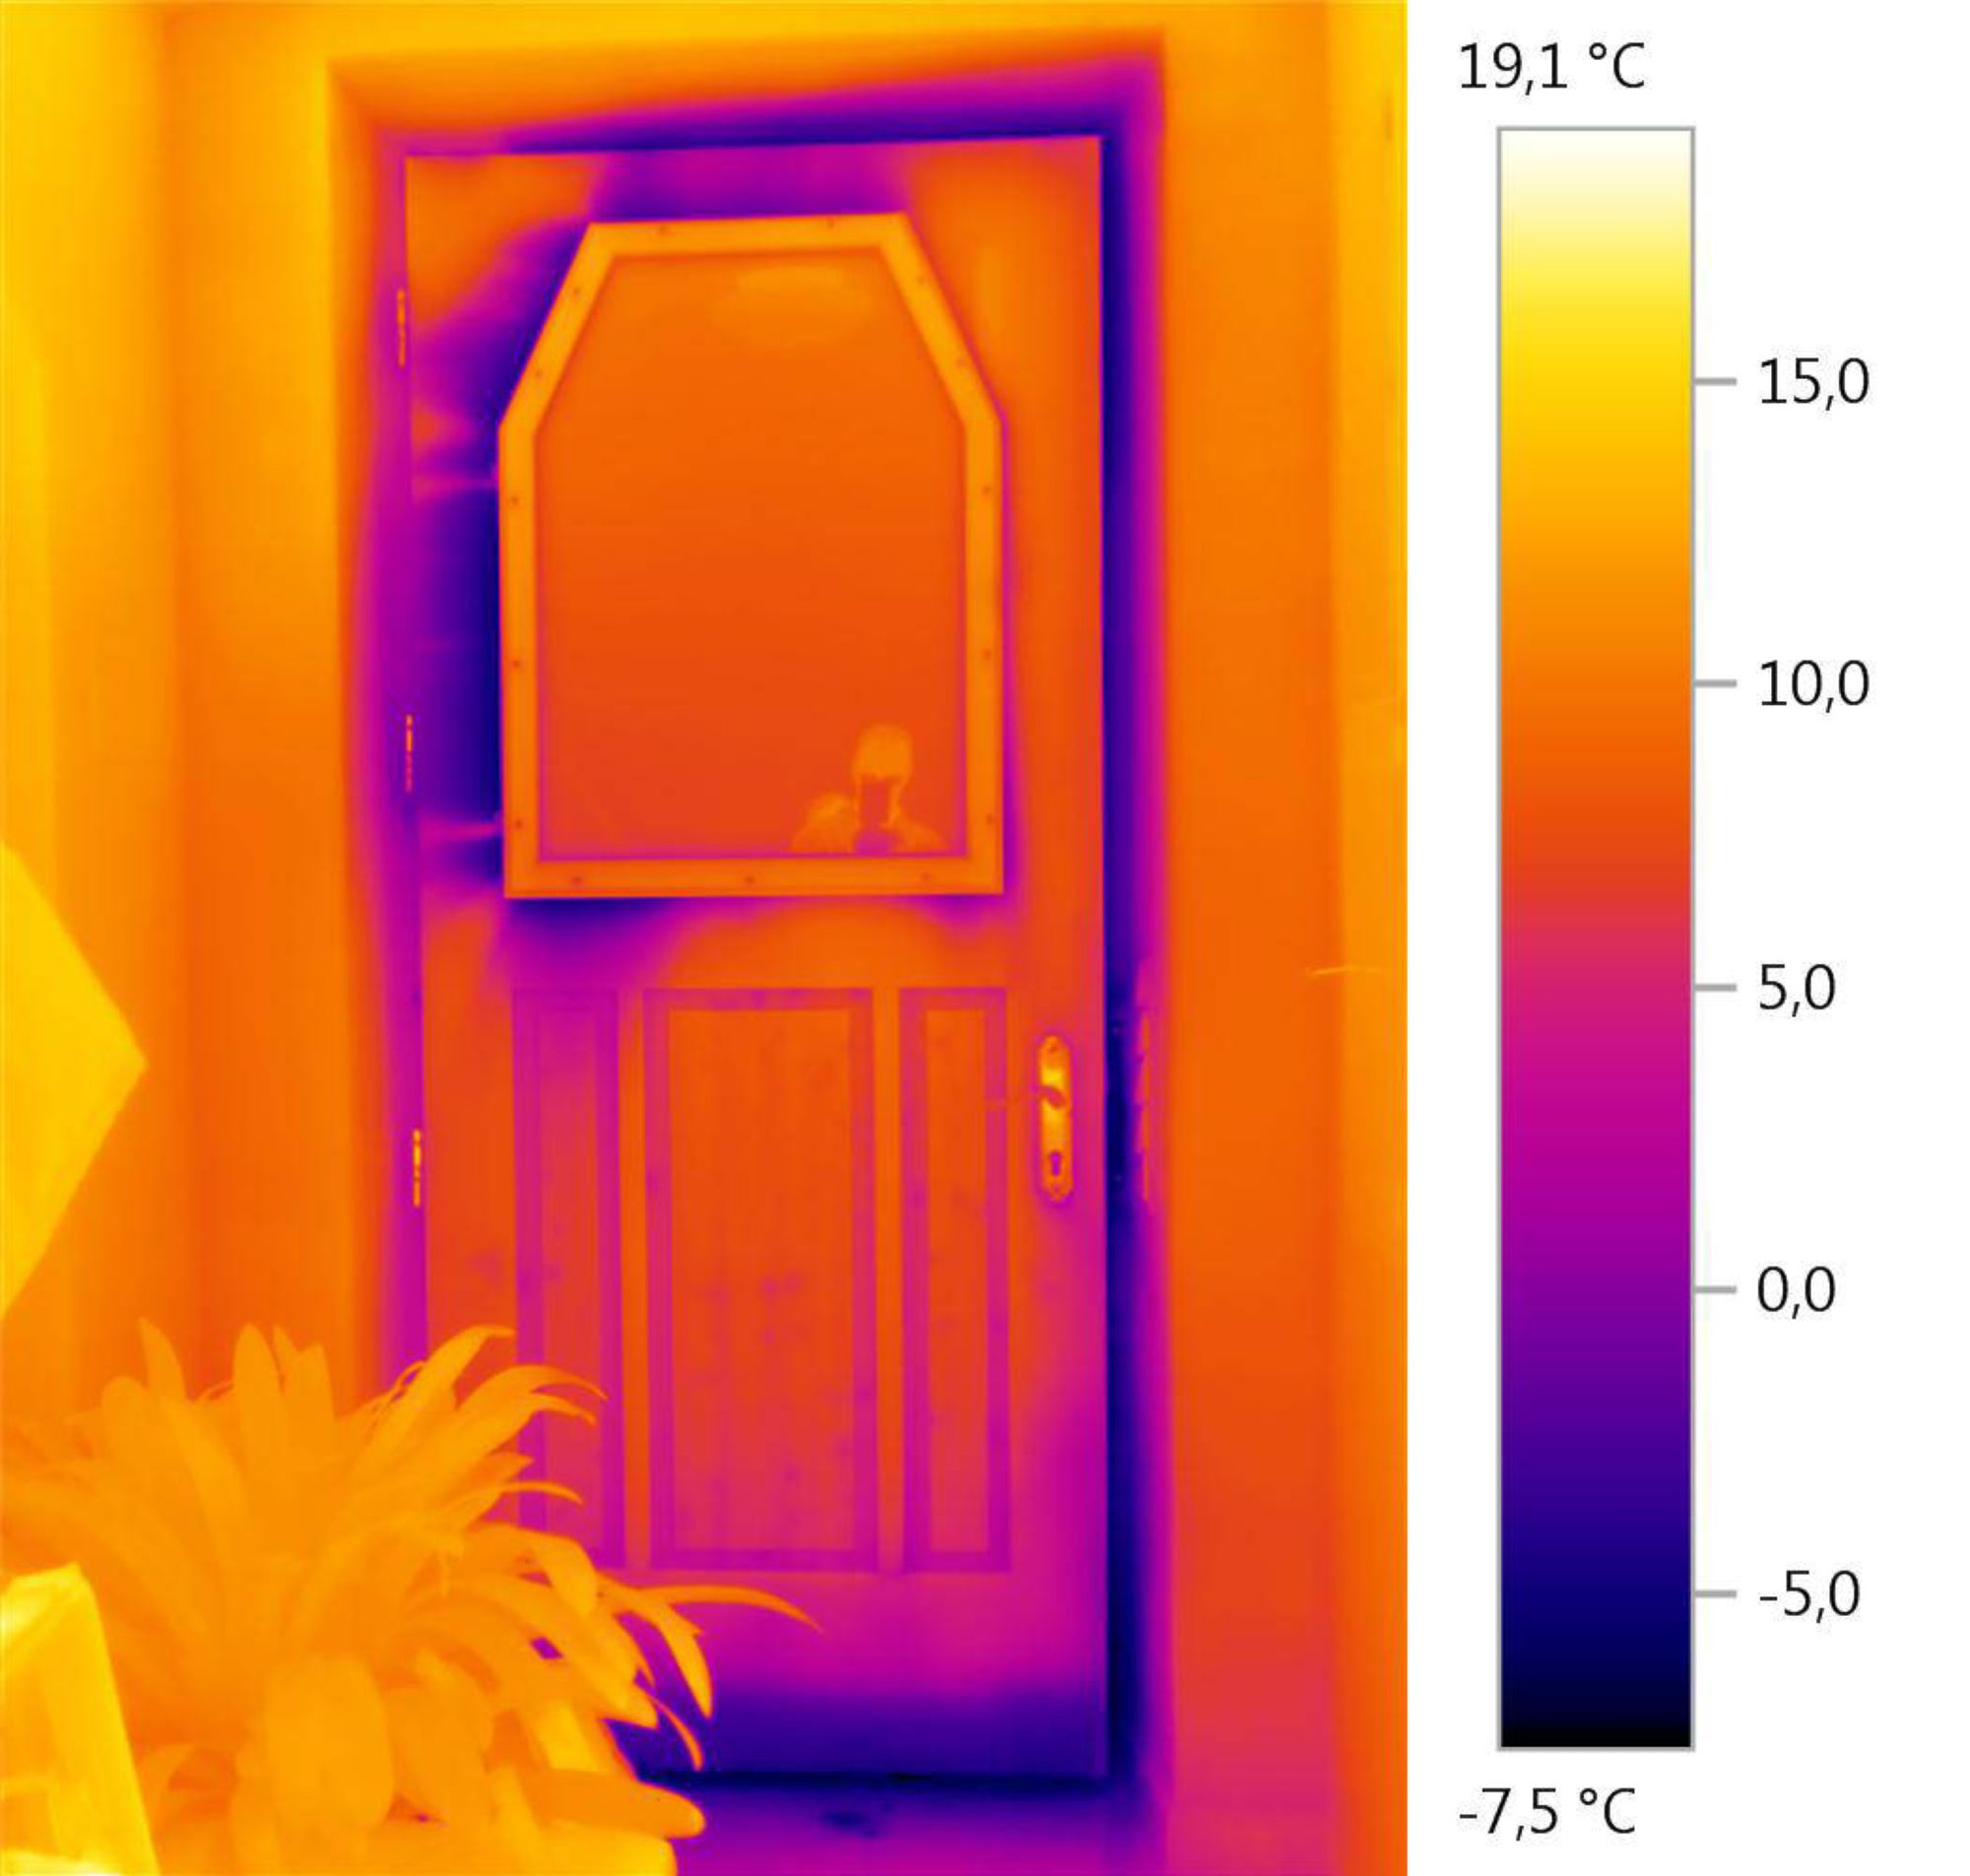 location-thermography-003822.jpg